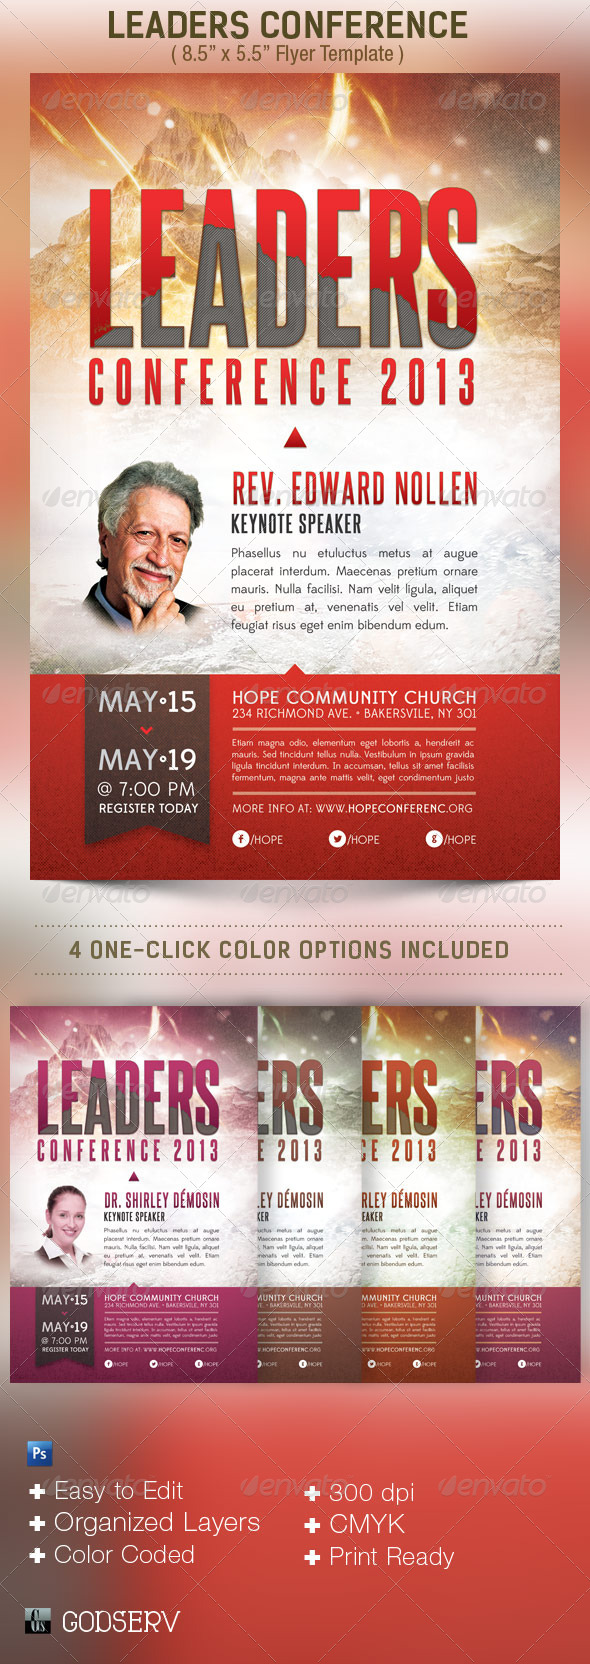 Leadership Conference Church Flyer Template - Church Flyers